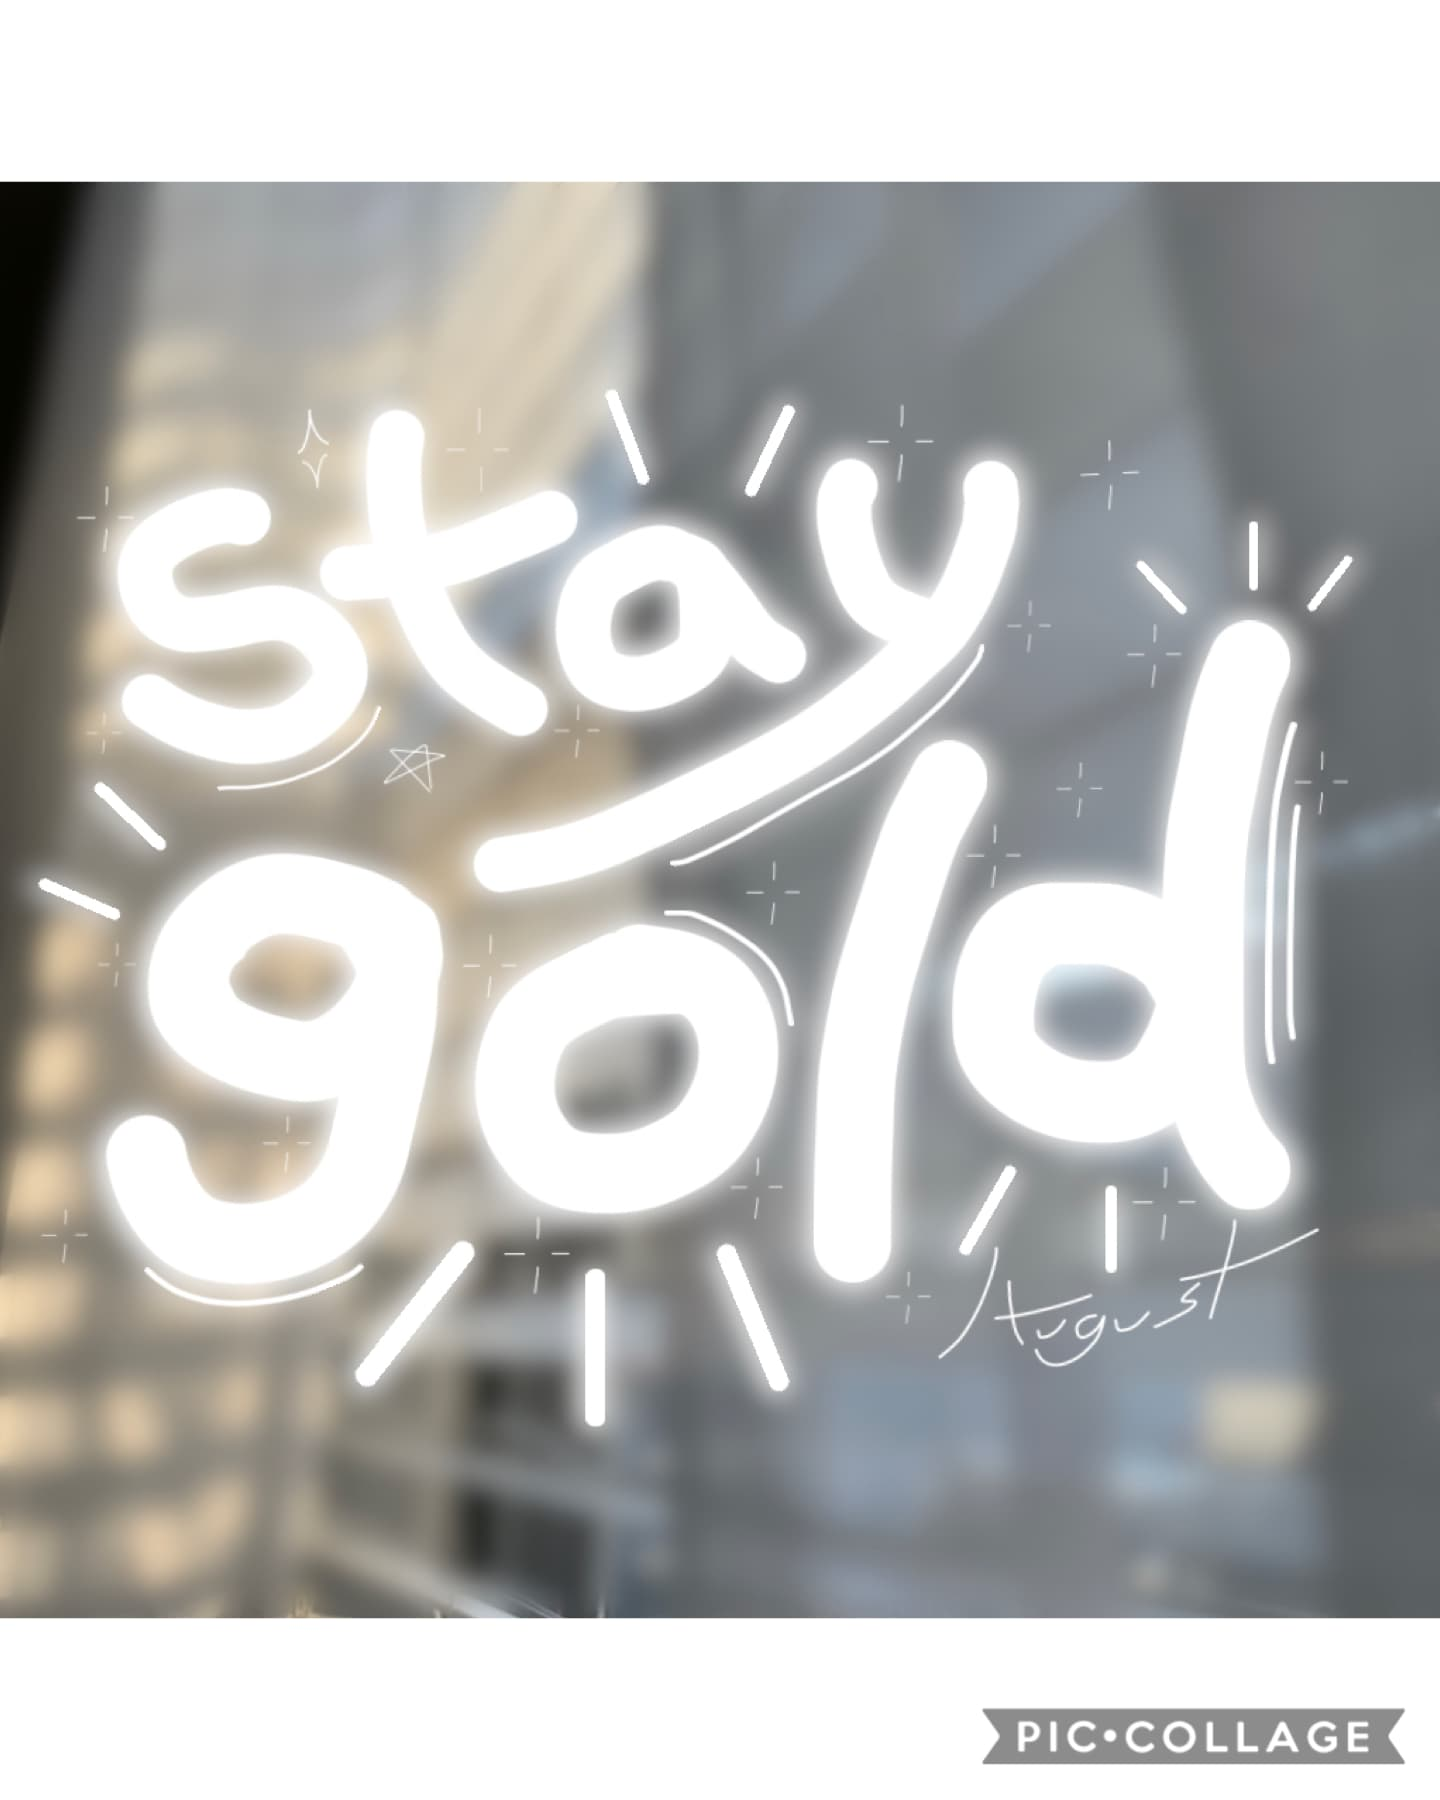 ||💫|| STAY GOLD - BTS ||💫||   posting bc it's been a while ; this song came out a while ago but i wanted to try this style ; listen to 'your eyes tell' by bts & i'll give you a virtual hug ; jk you all get hugs...but do listen pls👉👈 ; ilyasm — august